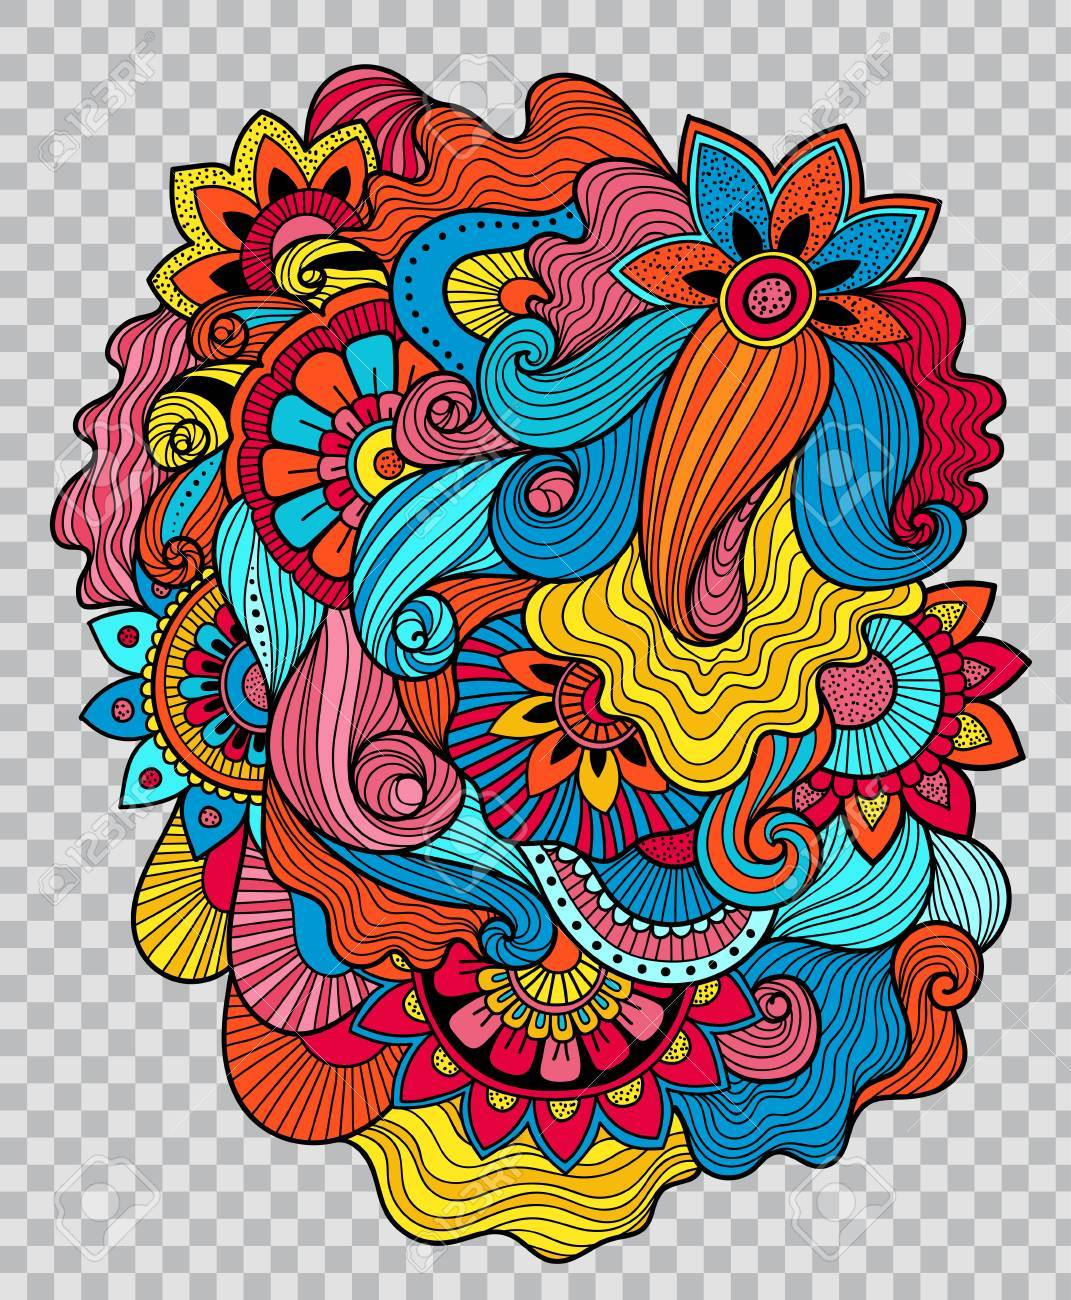 Colored floral tattoo artwork. Flower composition for tattoo..